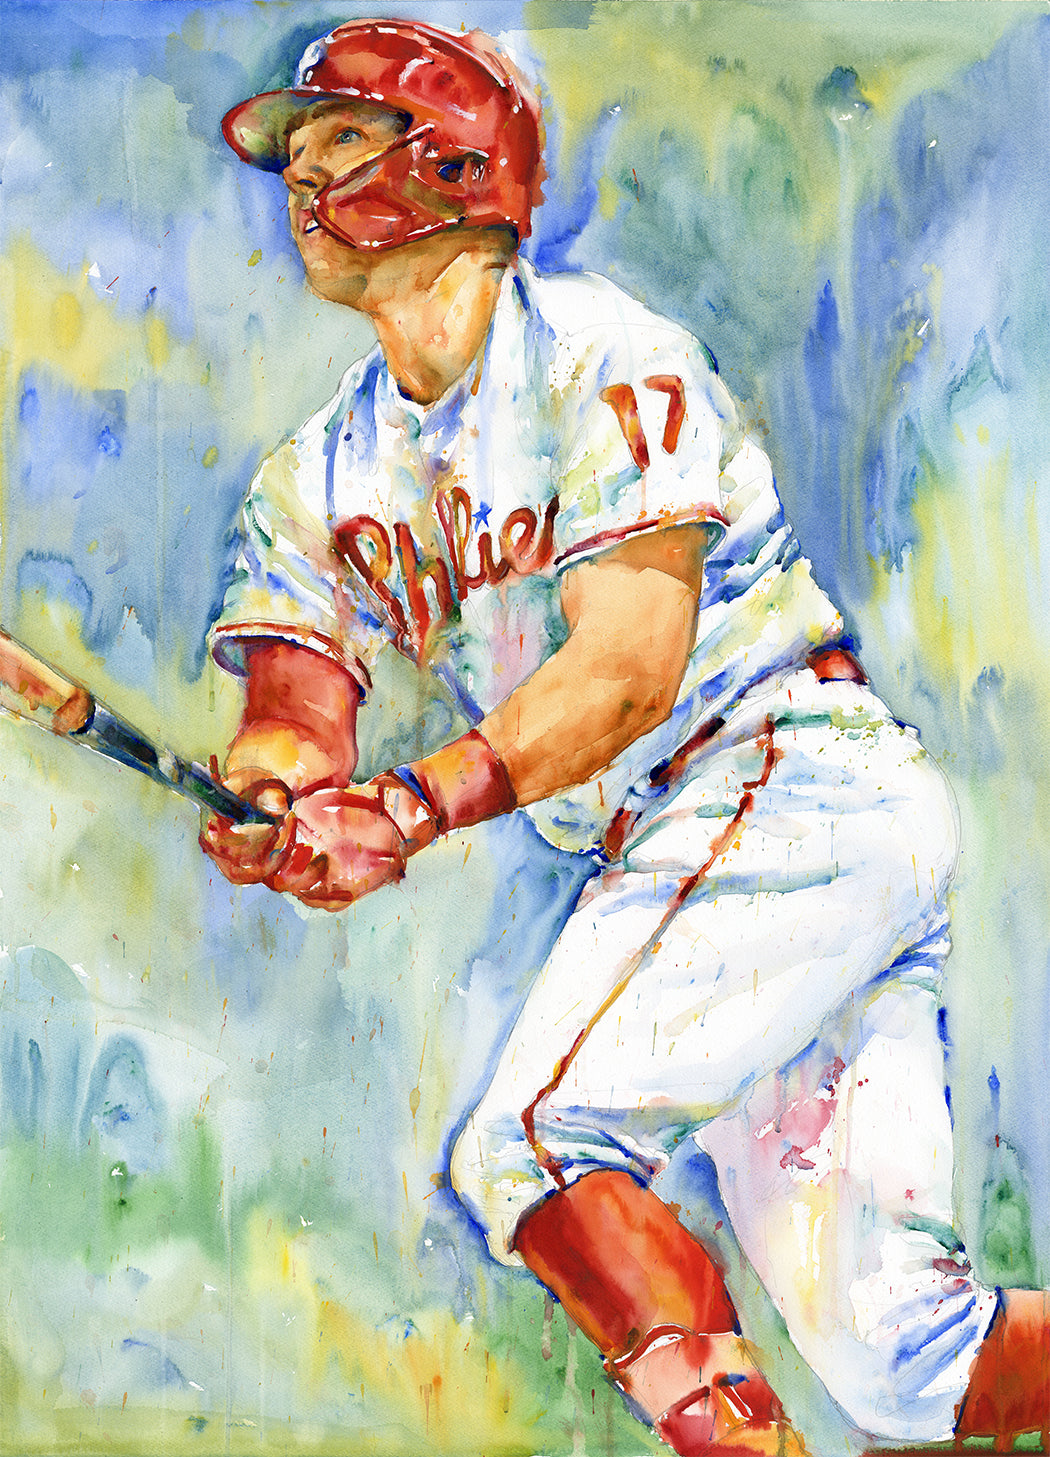 Rhys Hoskins - Original Topps Watercolor painting